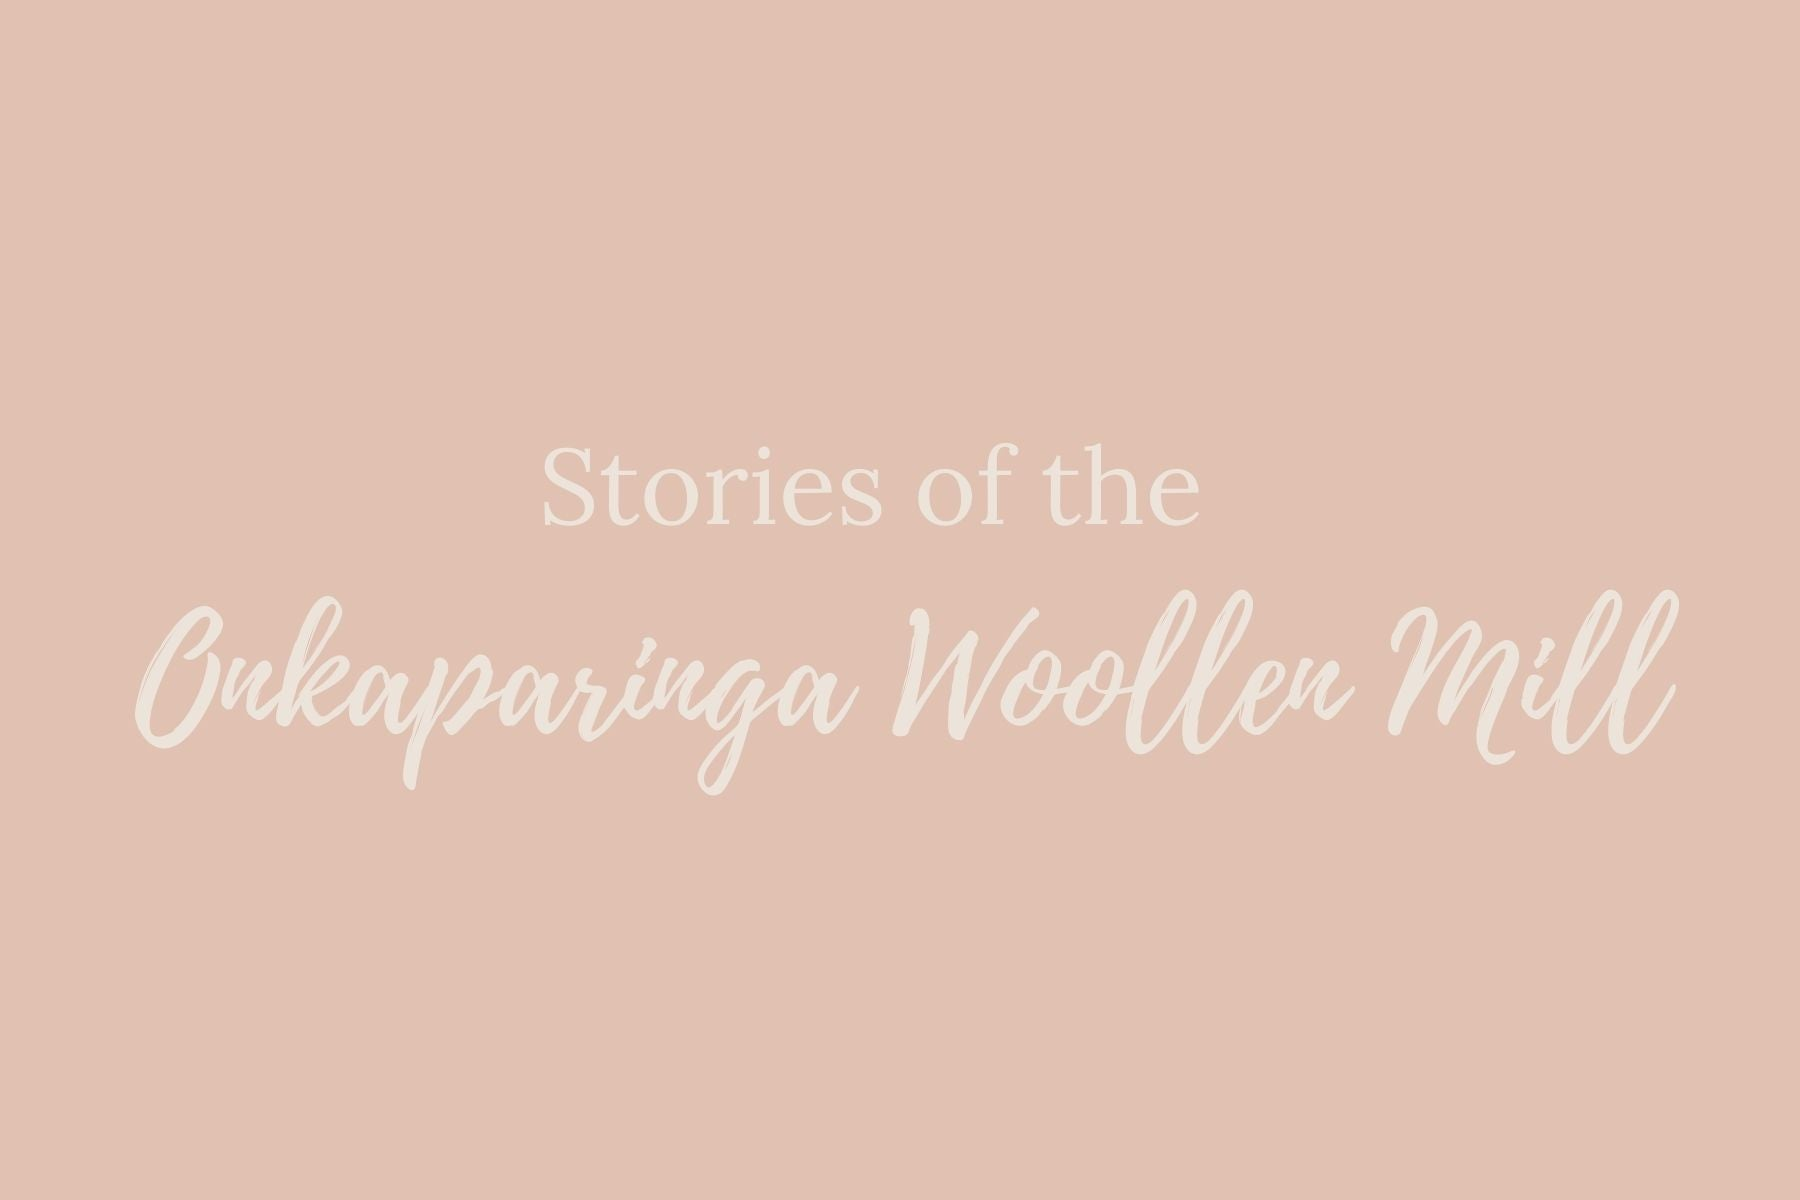 STORIES OF THE ONKAPARINGA WOOLLEN MILL